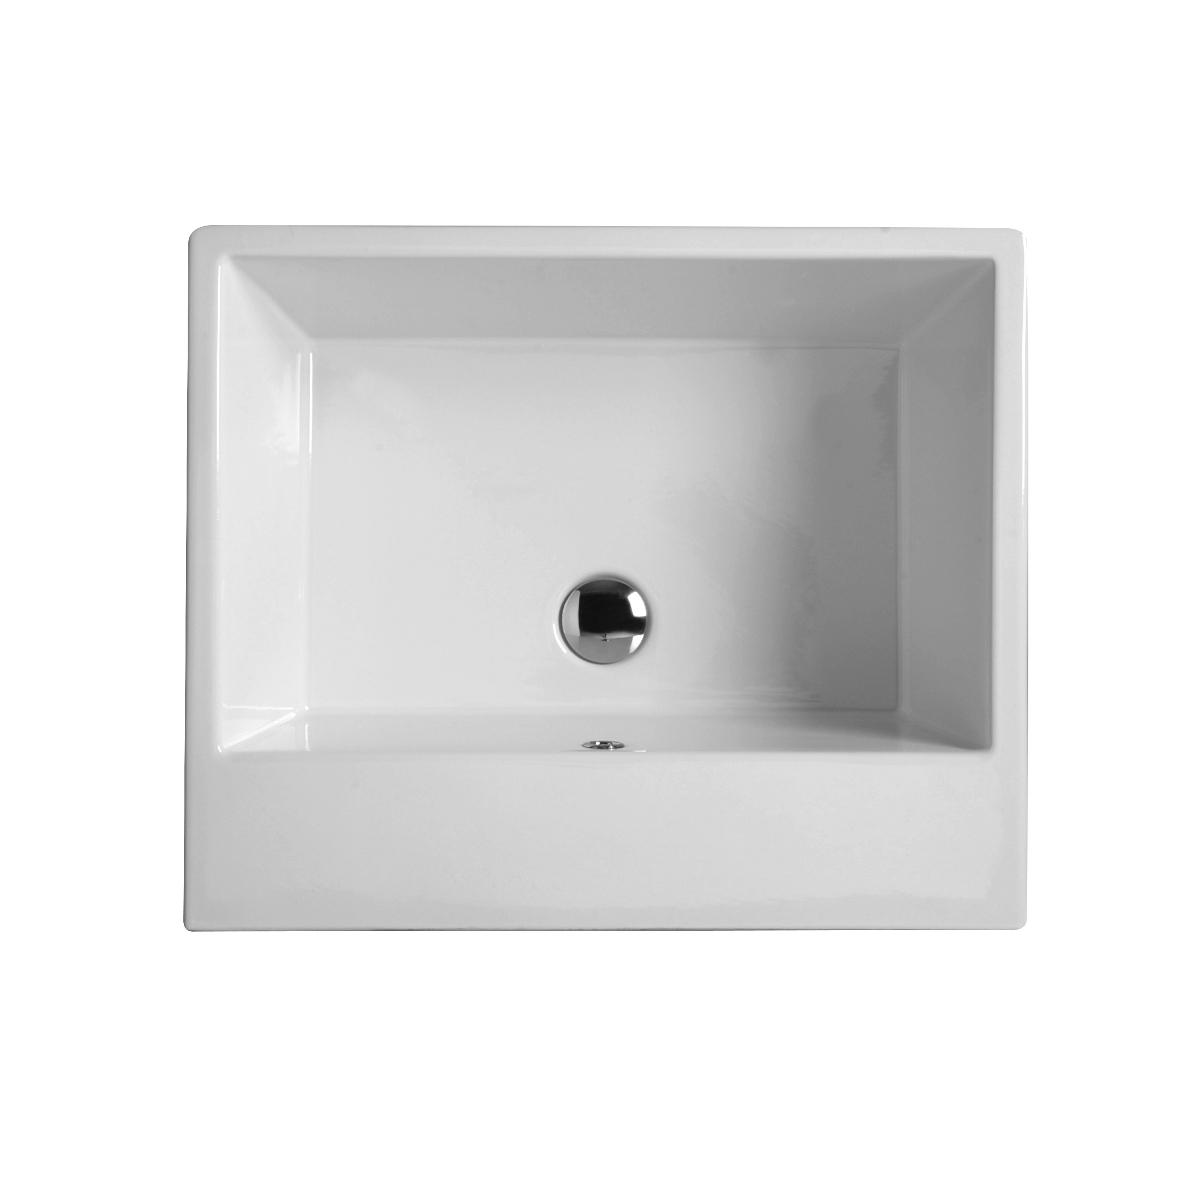 https://www.bagnoshop.com/public/lavabo-in-ceramica-60x50-vola.jpg